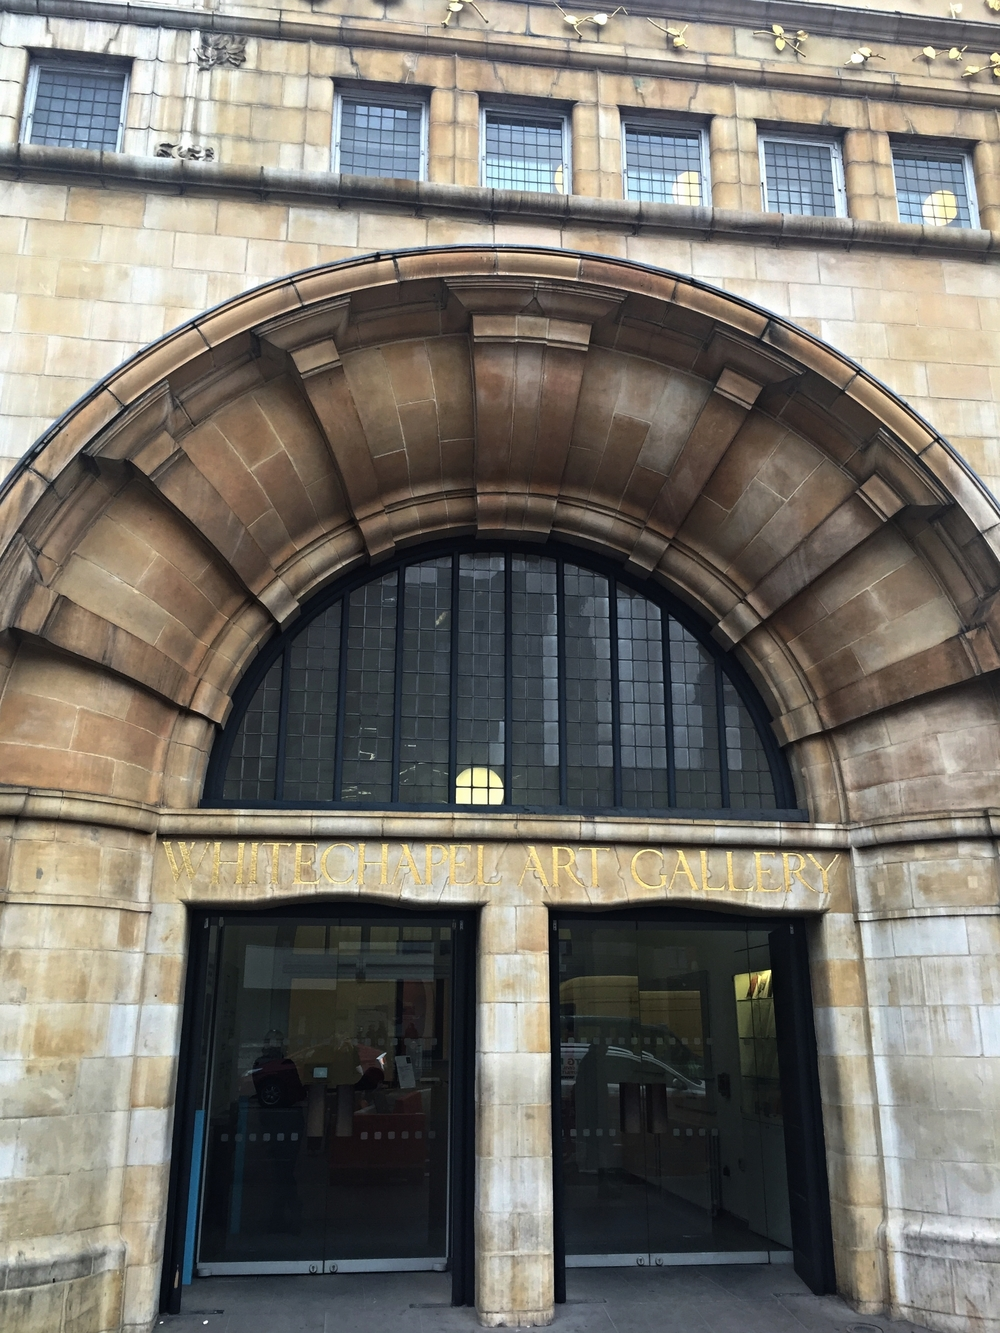 The unassuming and traditional facade of Whitechapel Gallery hides one of the most important contemporary public art galleries in London.